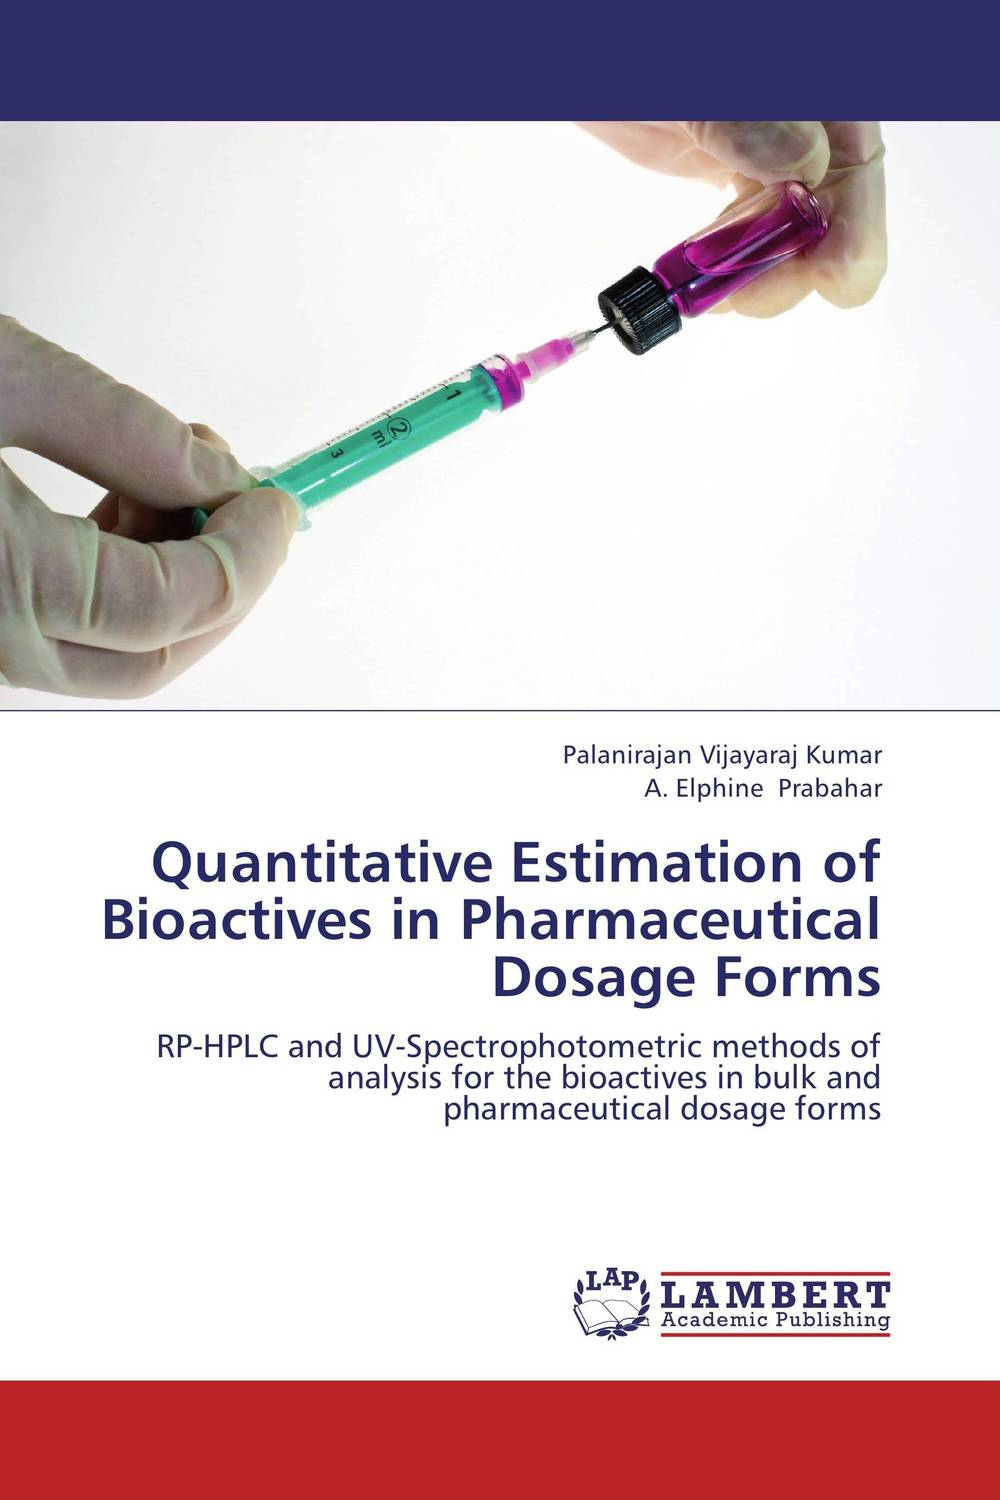 Quantitative Estimation of Bioactives in Pharmaceutical Dosage Forms thomas j schriber an introduction to simulation using gpss h